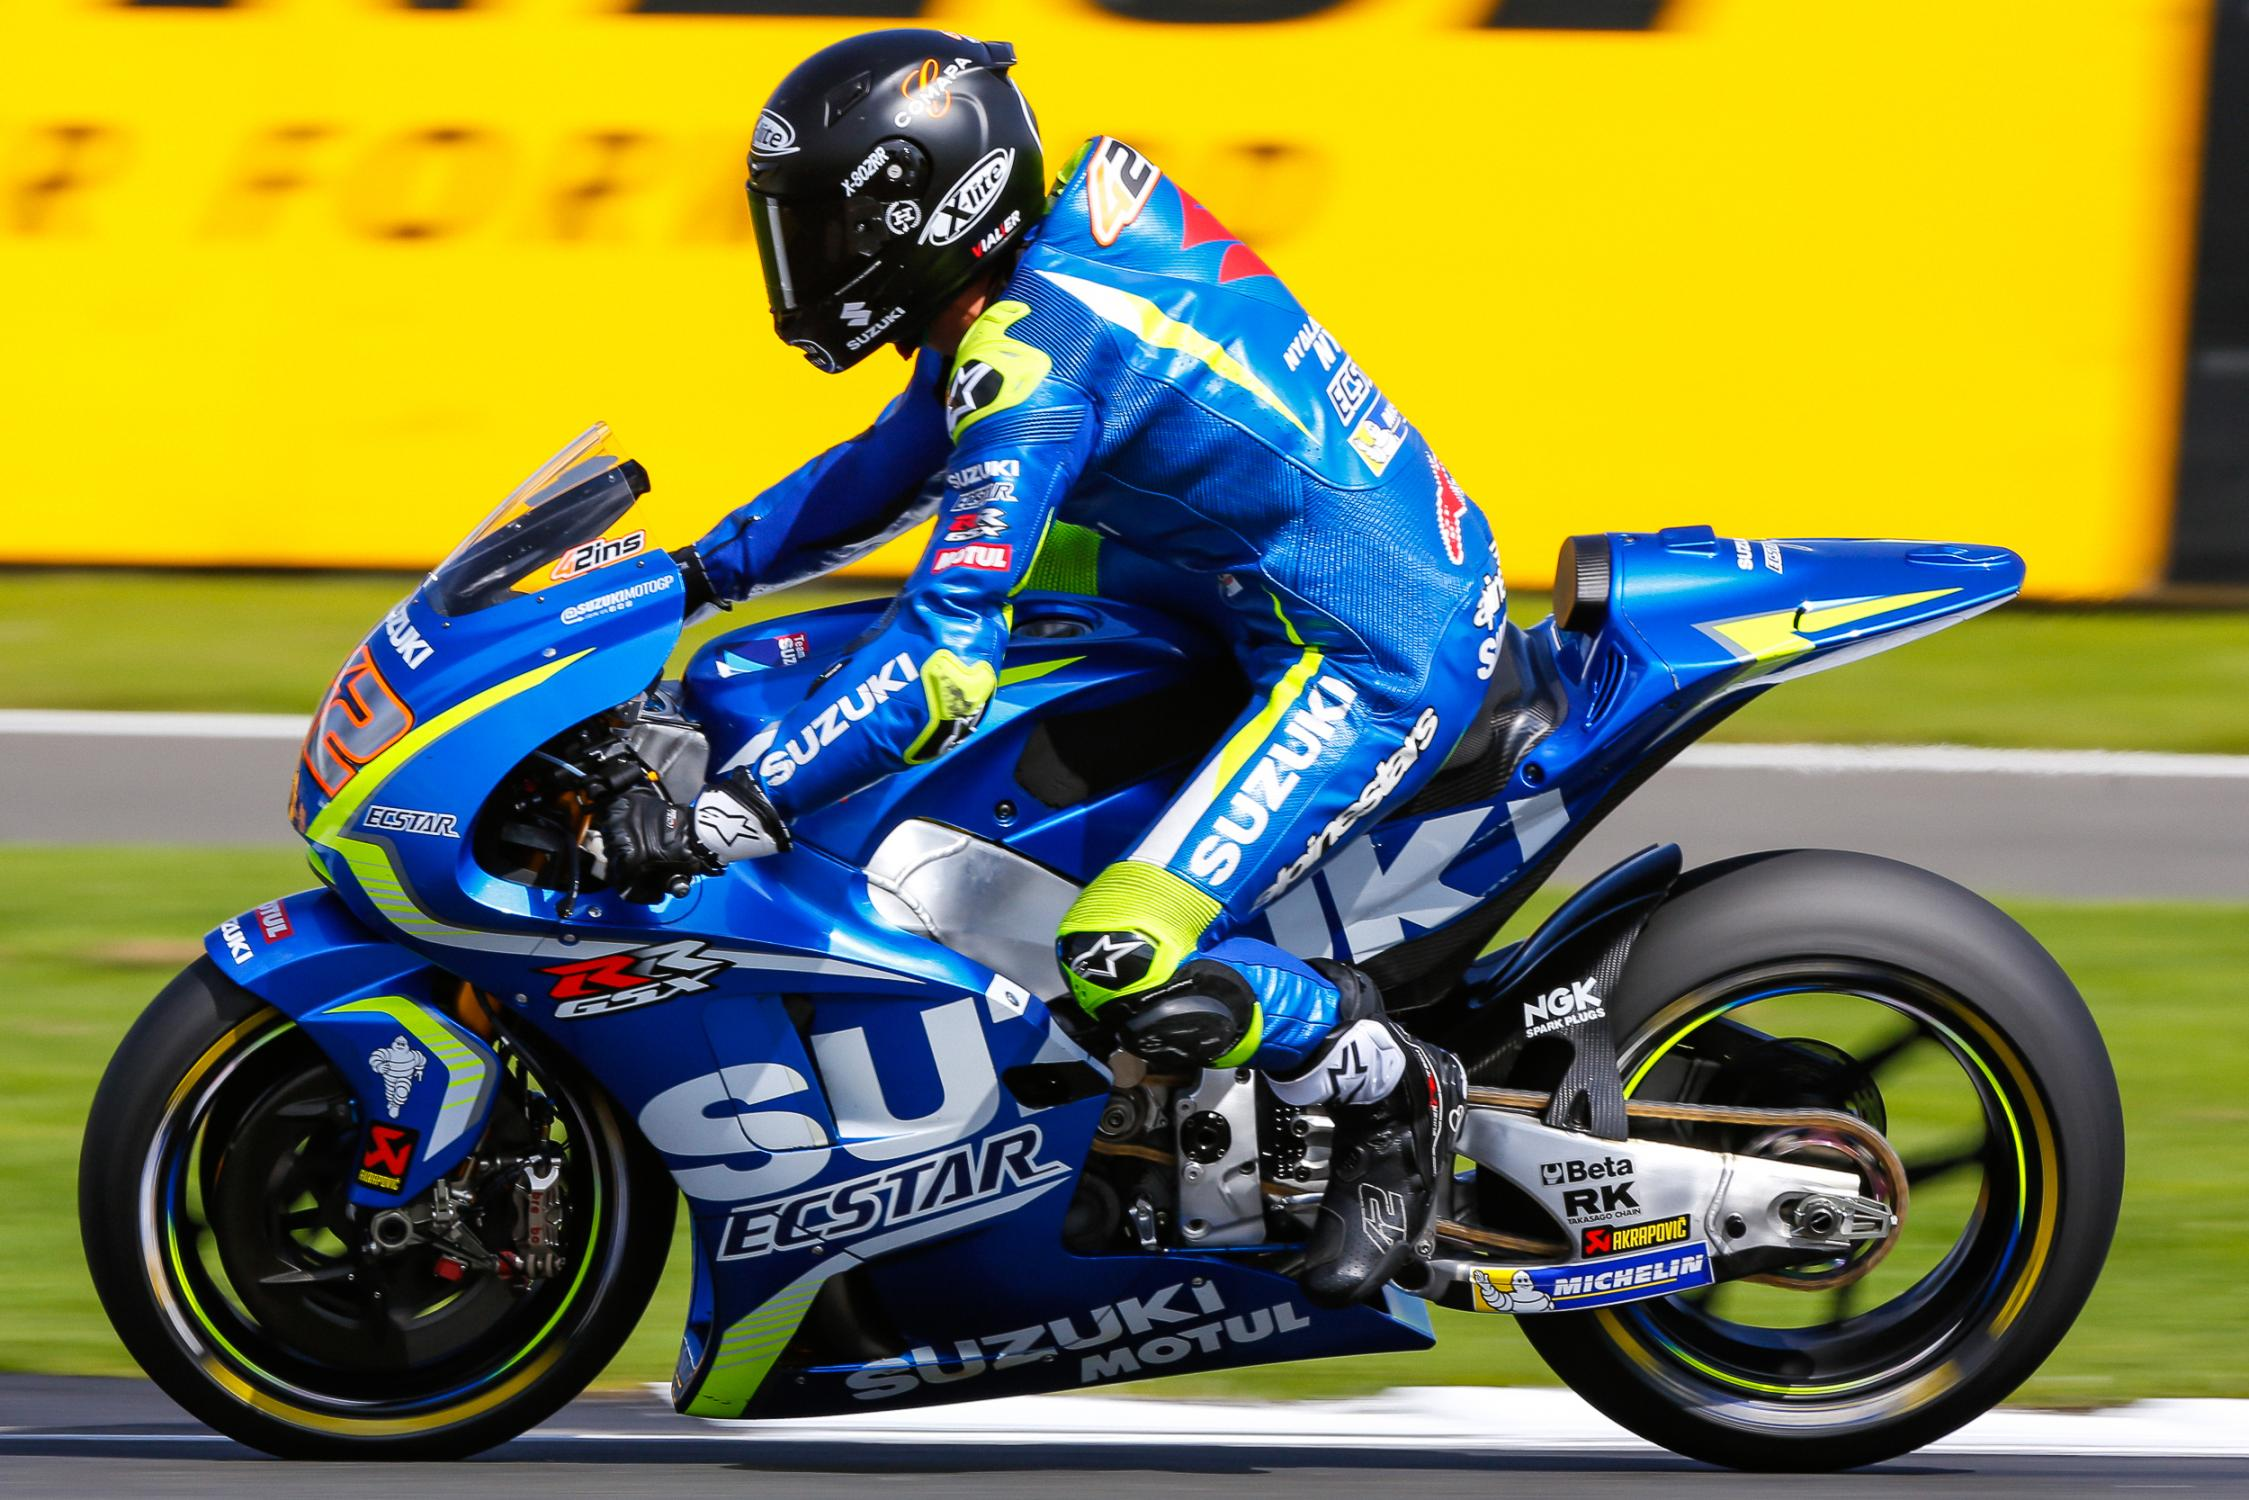 42-alex-rins-esp_gp_7214.gallery_full_top_fullscreen.jpg